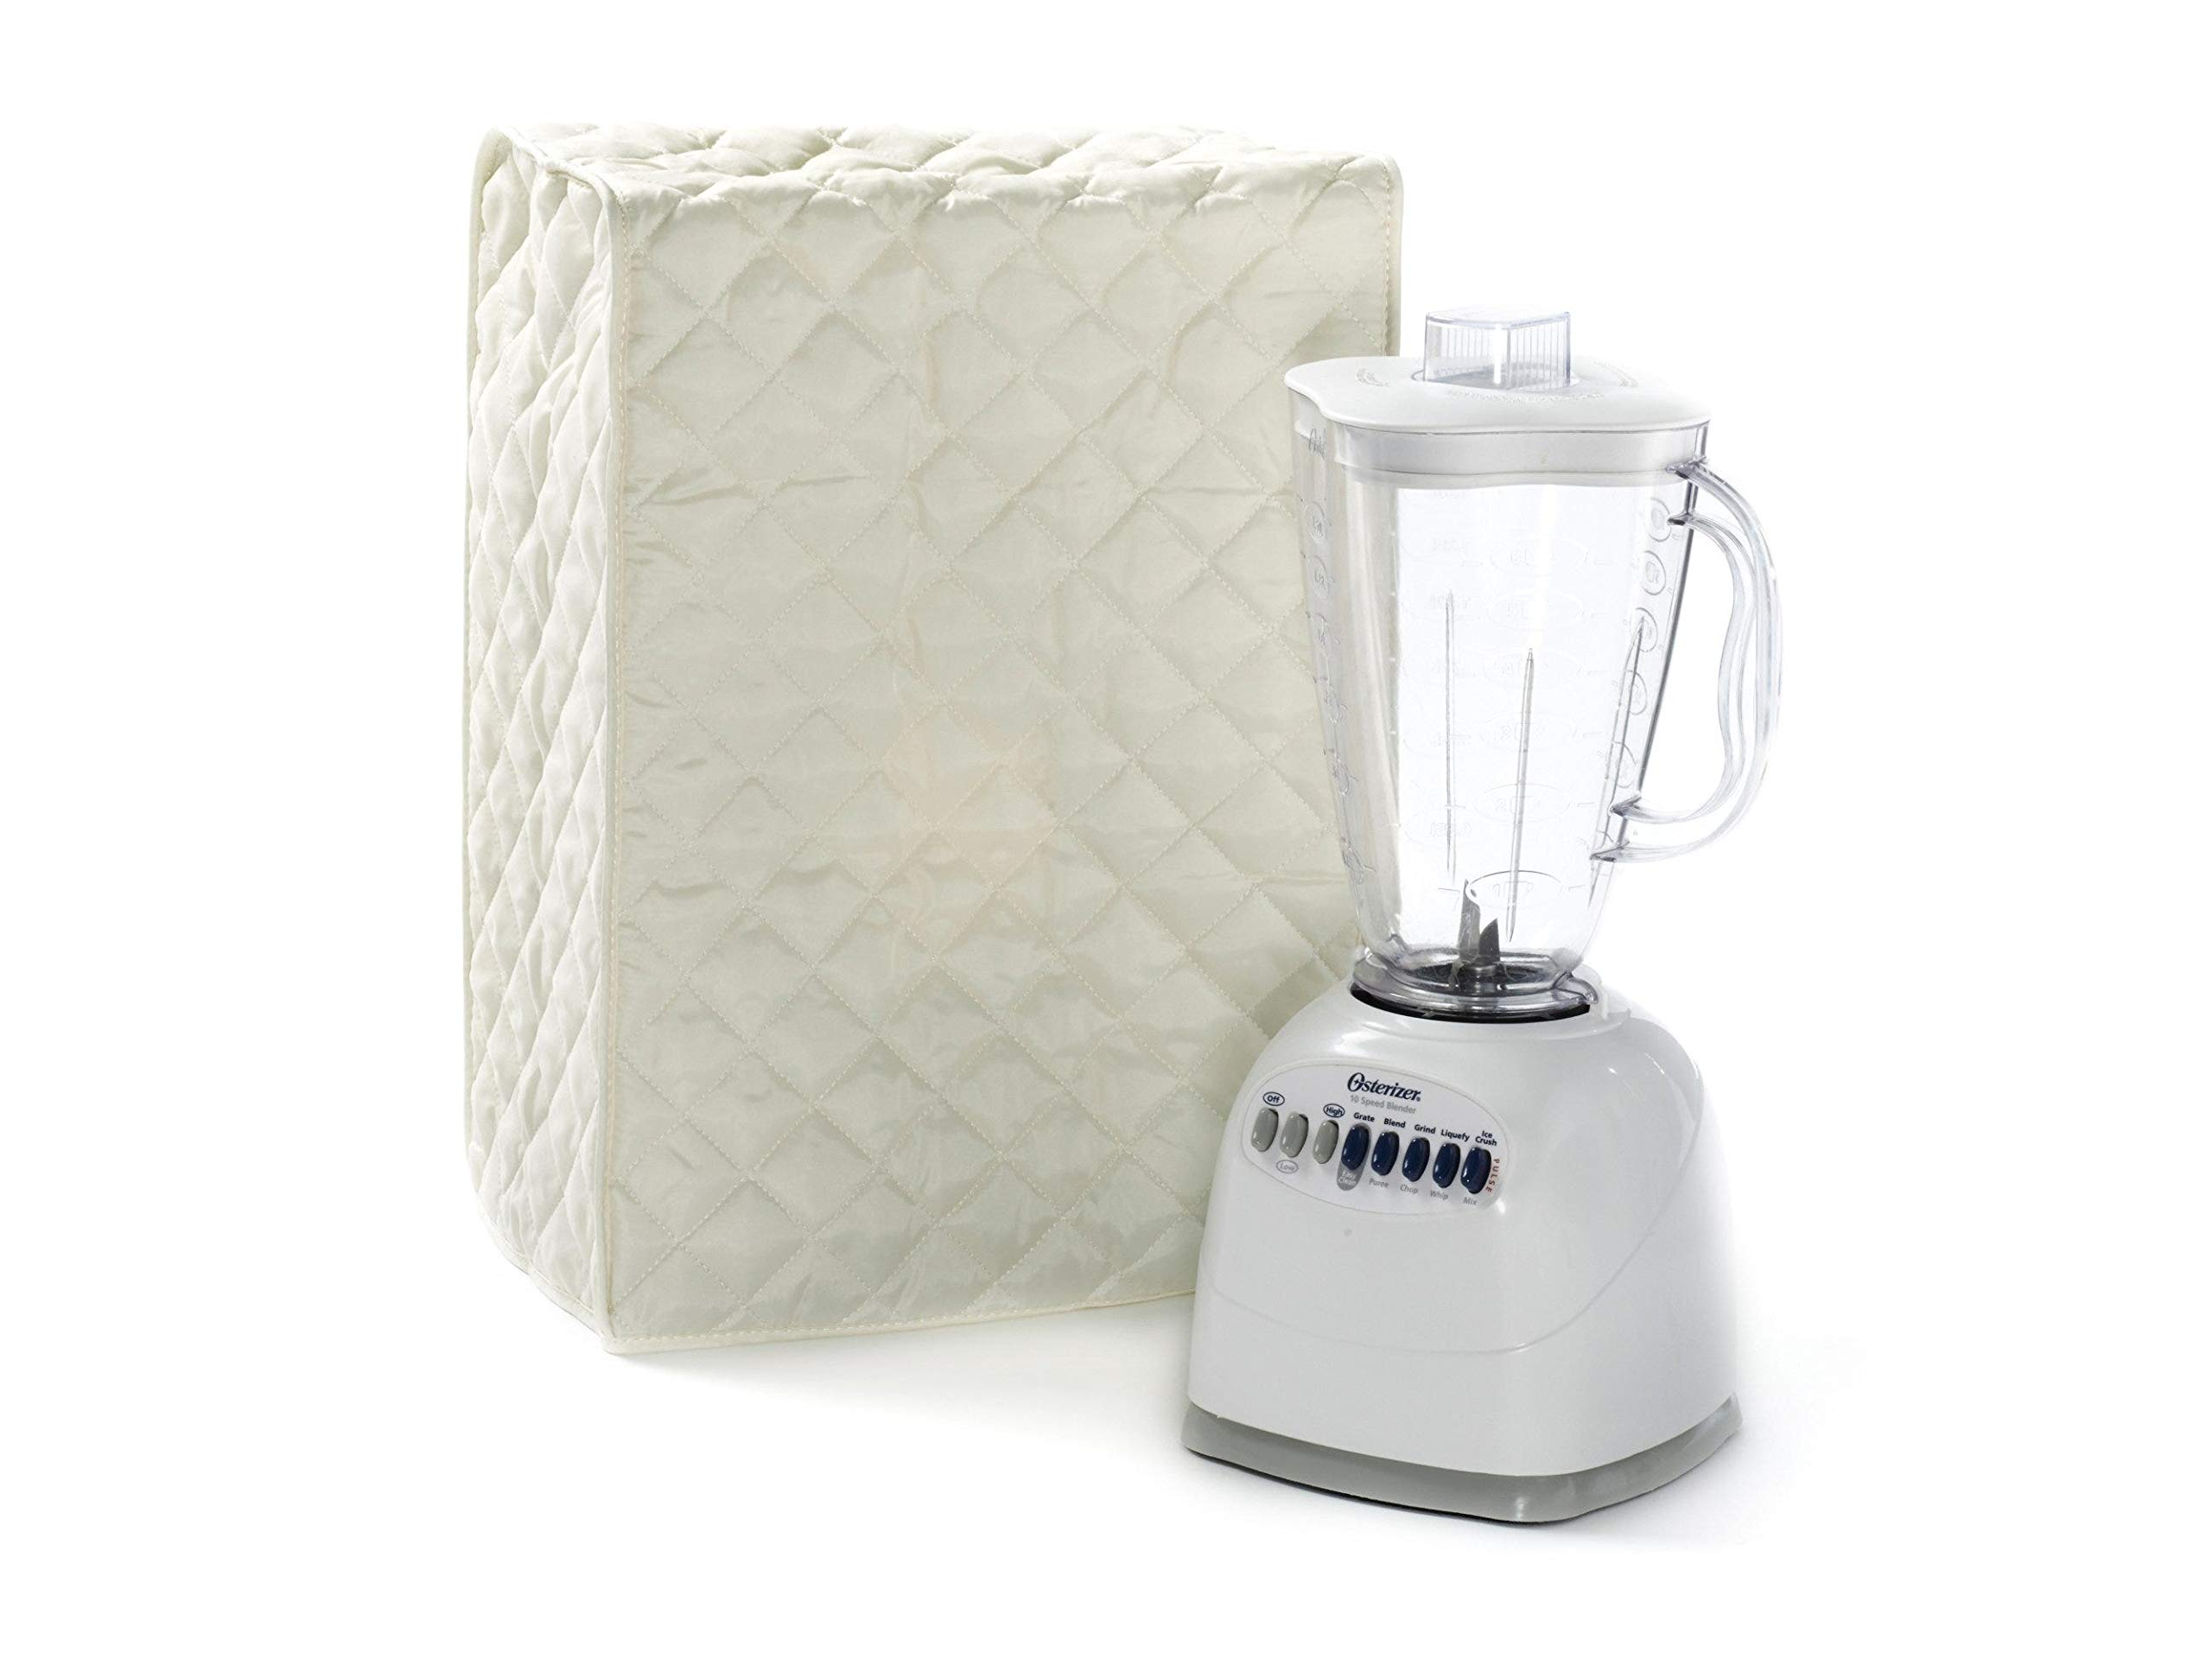 Covermates Keepsakes - Blender Cover – Dust Protection - Stain Resistant - Washable – Appliance Cover - Cream